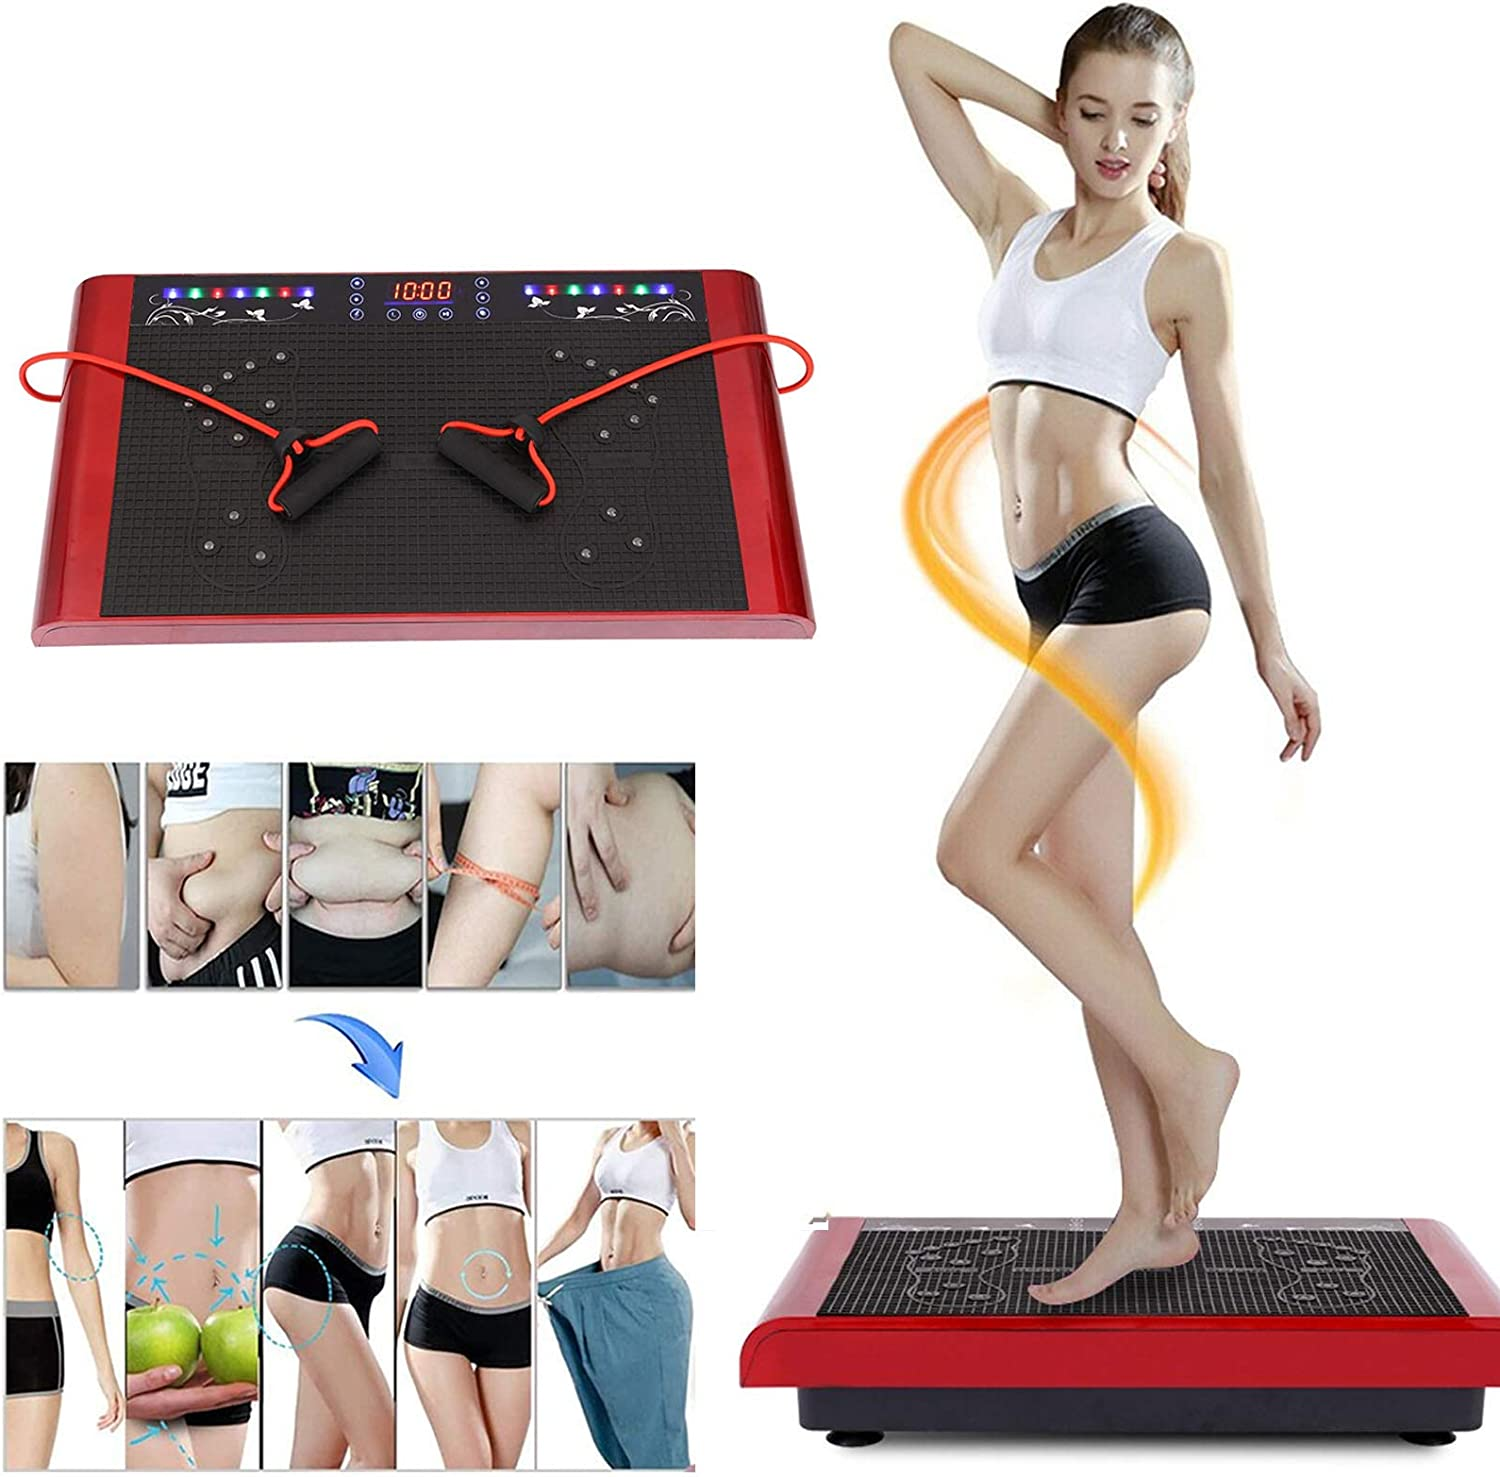 price Qianglin Music Fitness Vibration Machine Gym Work Full Body Max 70% OFF Home